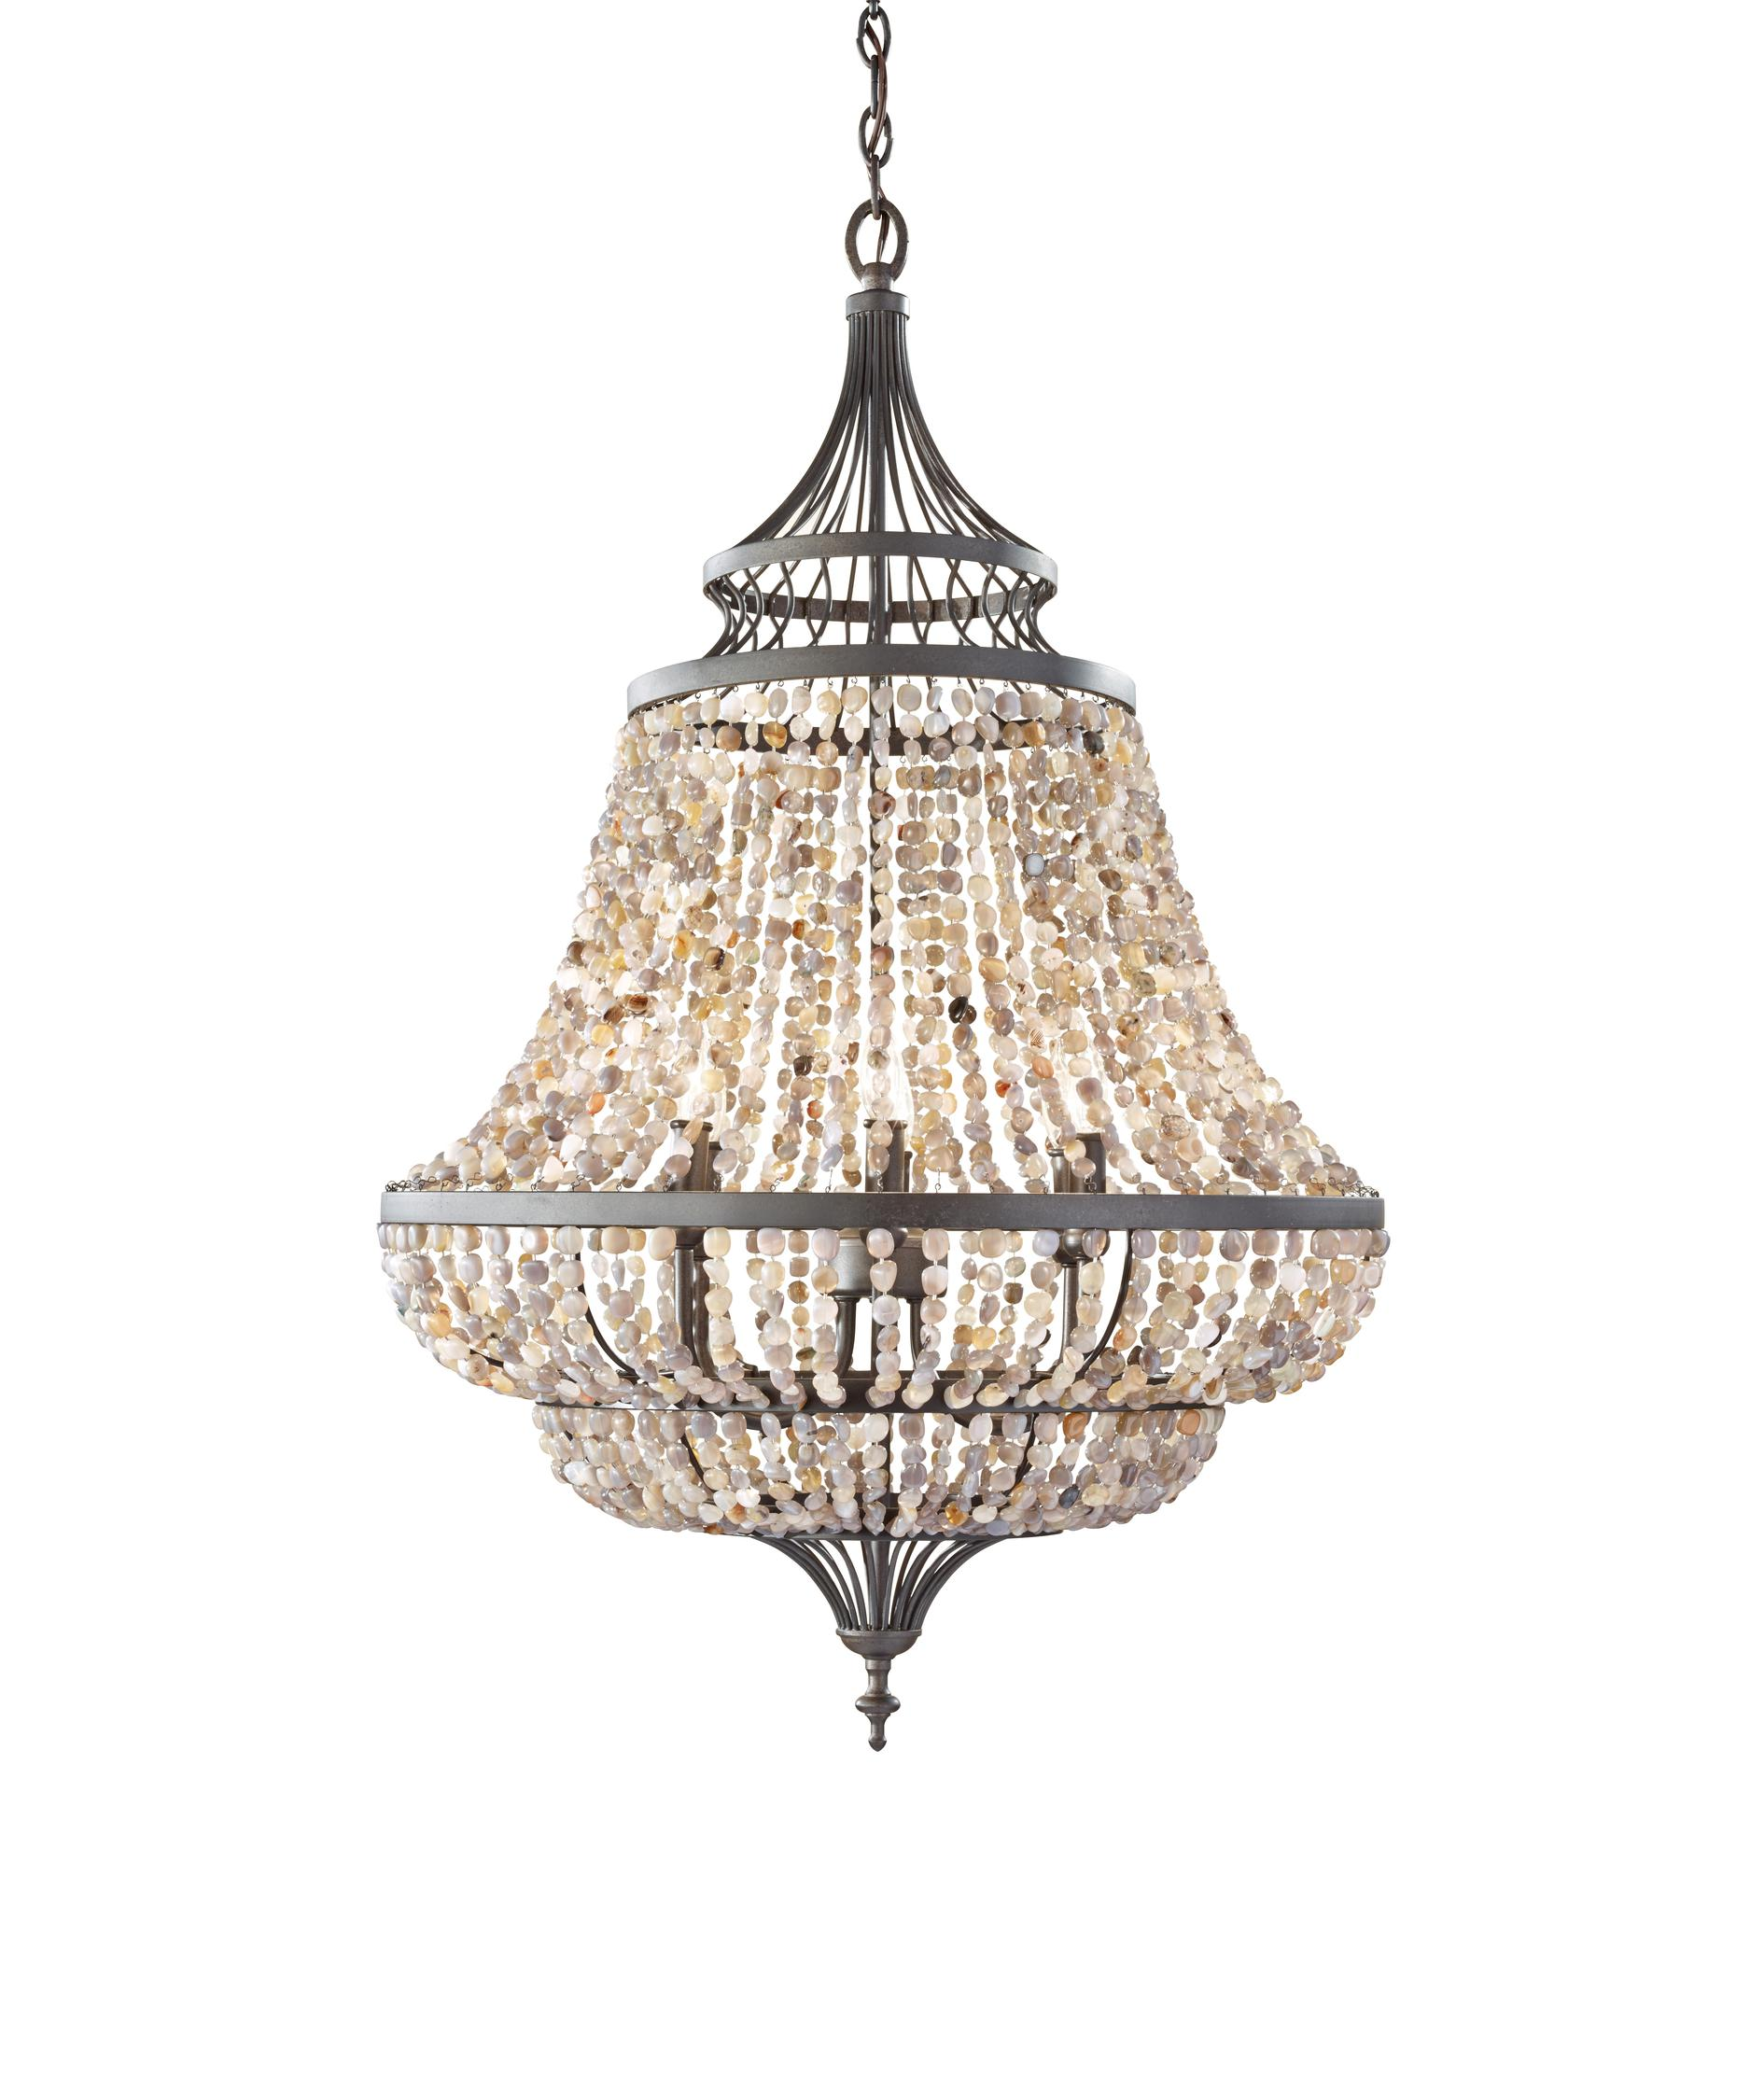 Murray Feiss Maarid 24 Inch Wide 6 Light Chandelier – Murray Feiss Chandeliers